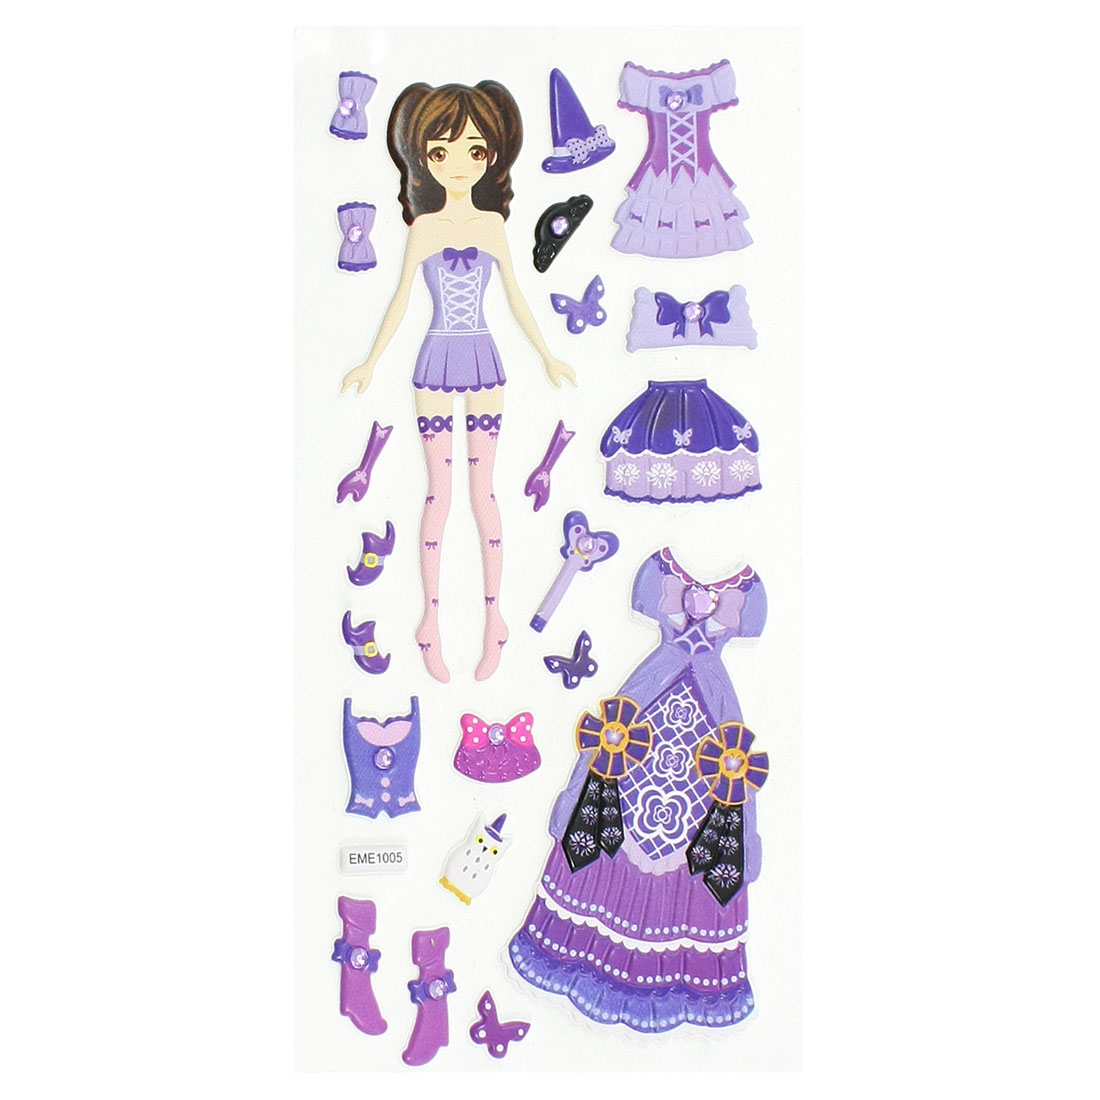 Kids Plastic DIY Rhinestone Inlaid Dress Up Princess 3D Sticker Sheet Purple